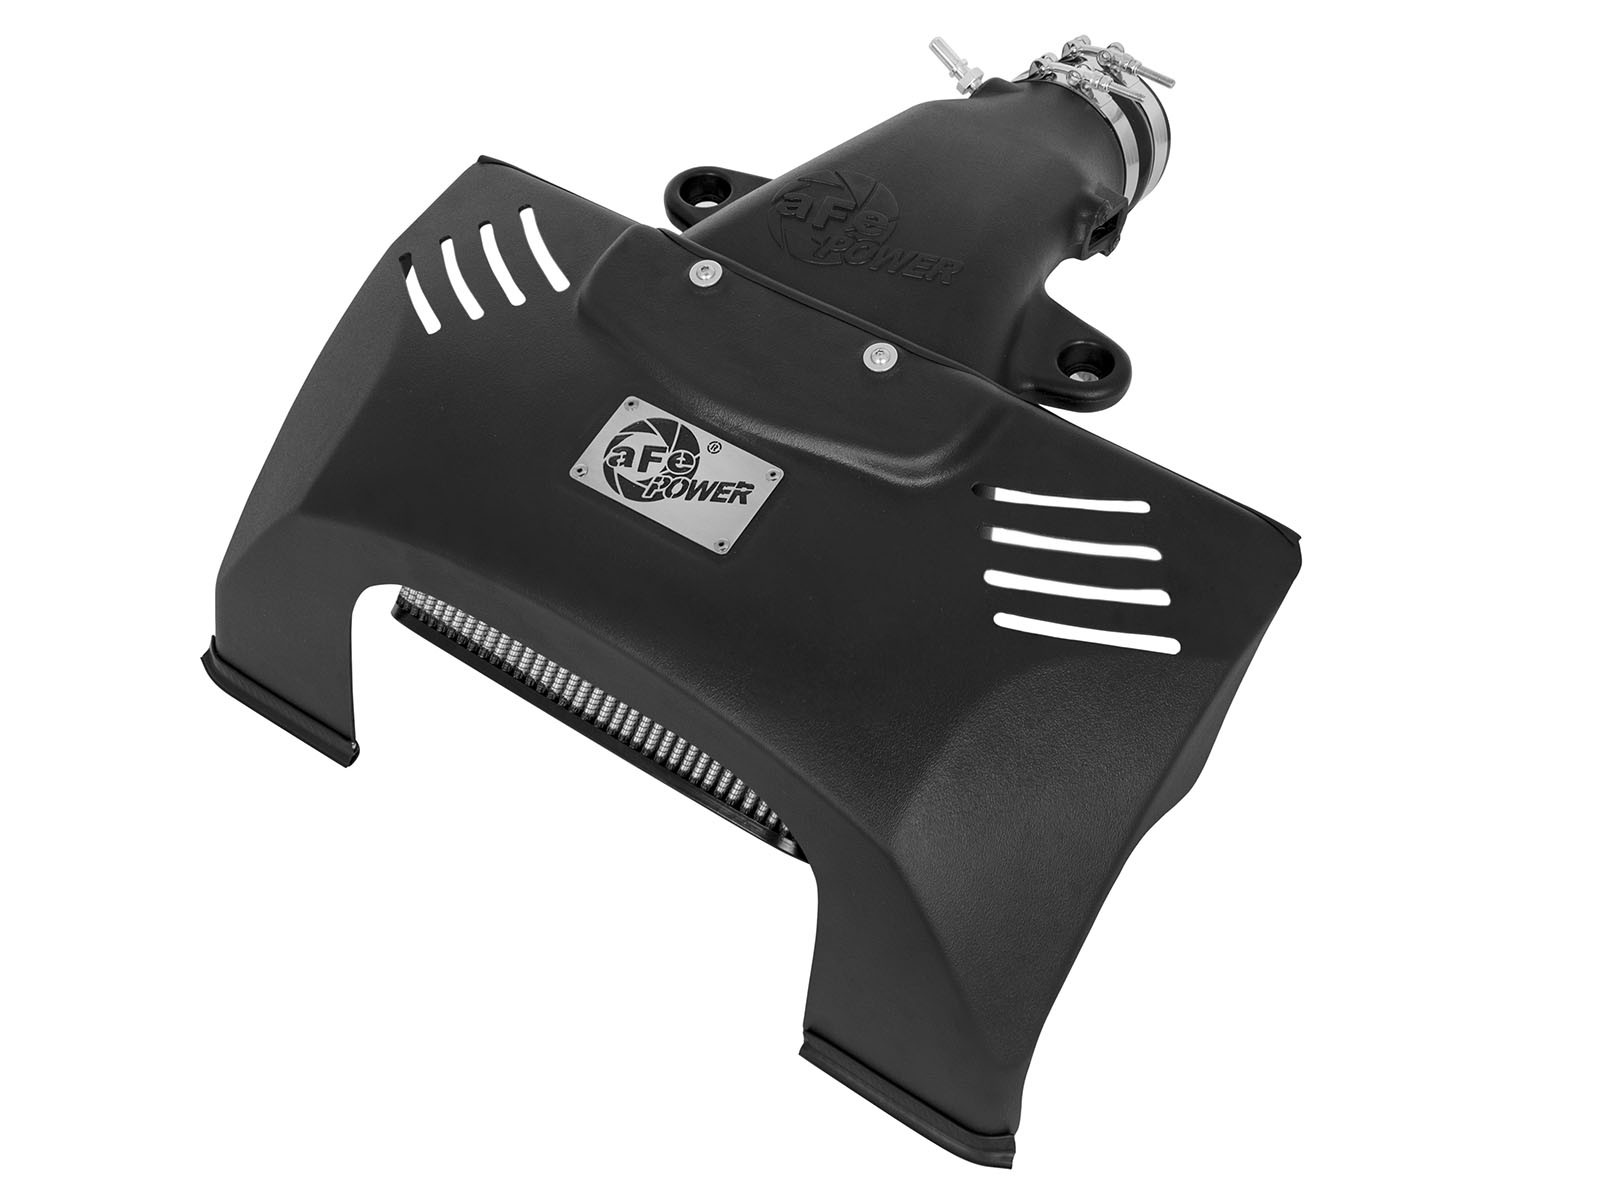 aFe POWER 51-12732 Magnum FORCE Stage-2 Pro DRY S Cold Air Intake System